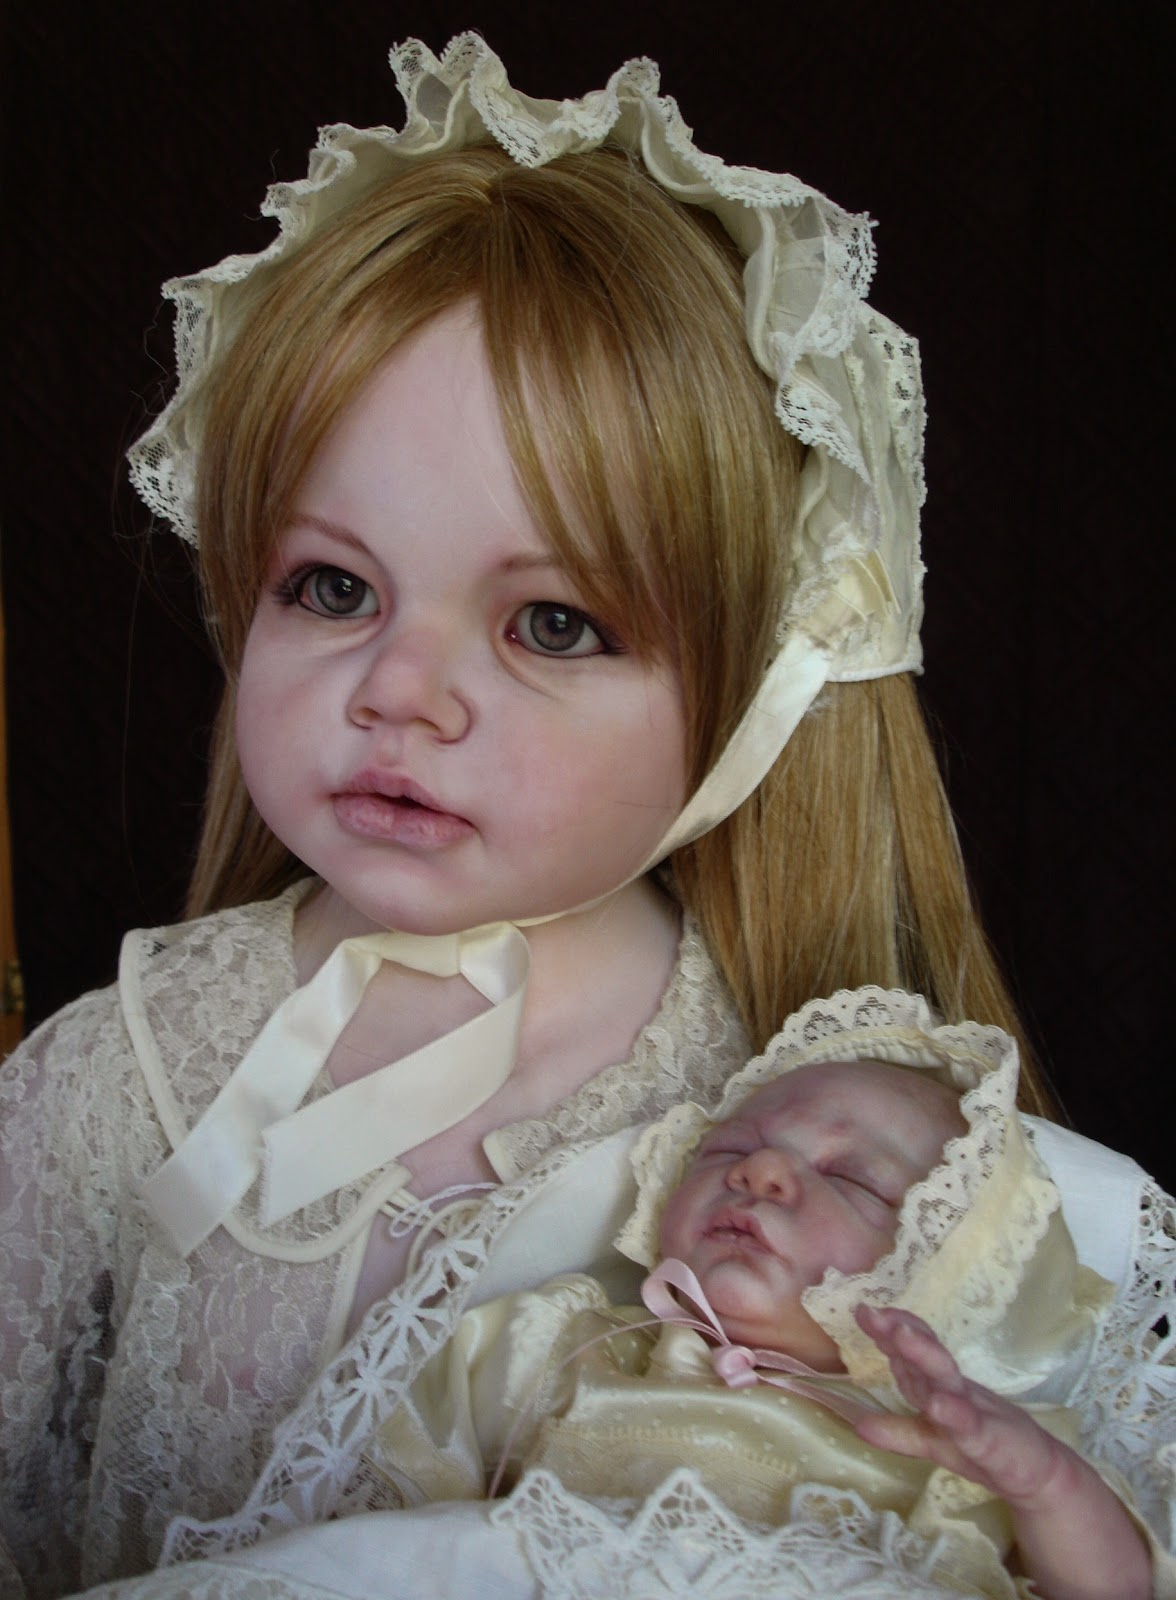 Anya S Originals Reborns And Ooak Art Dolls September 2012